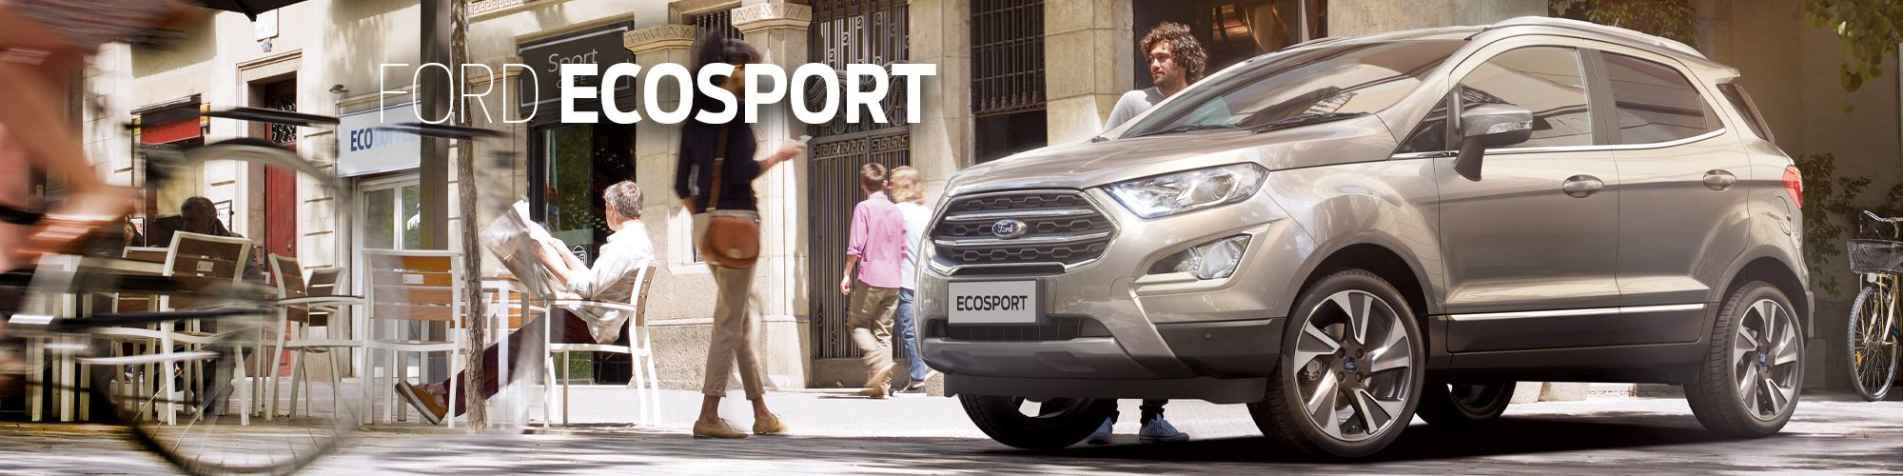 Ford Q3 20 Home Page Banner 3